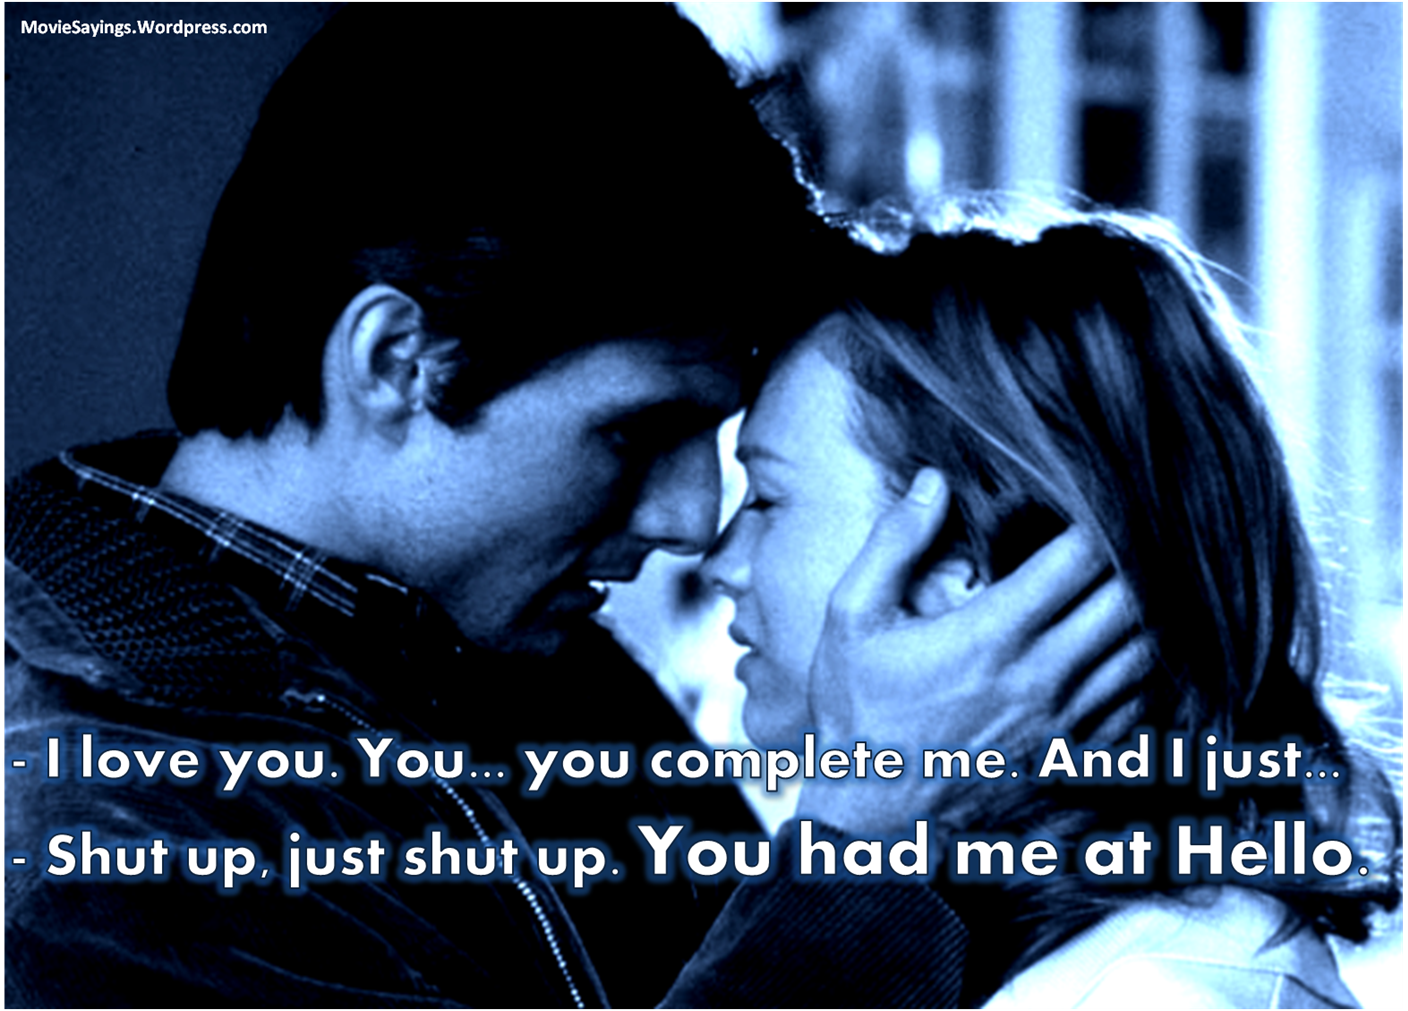 Jerry Maguire | Movie Sayings